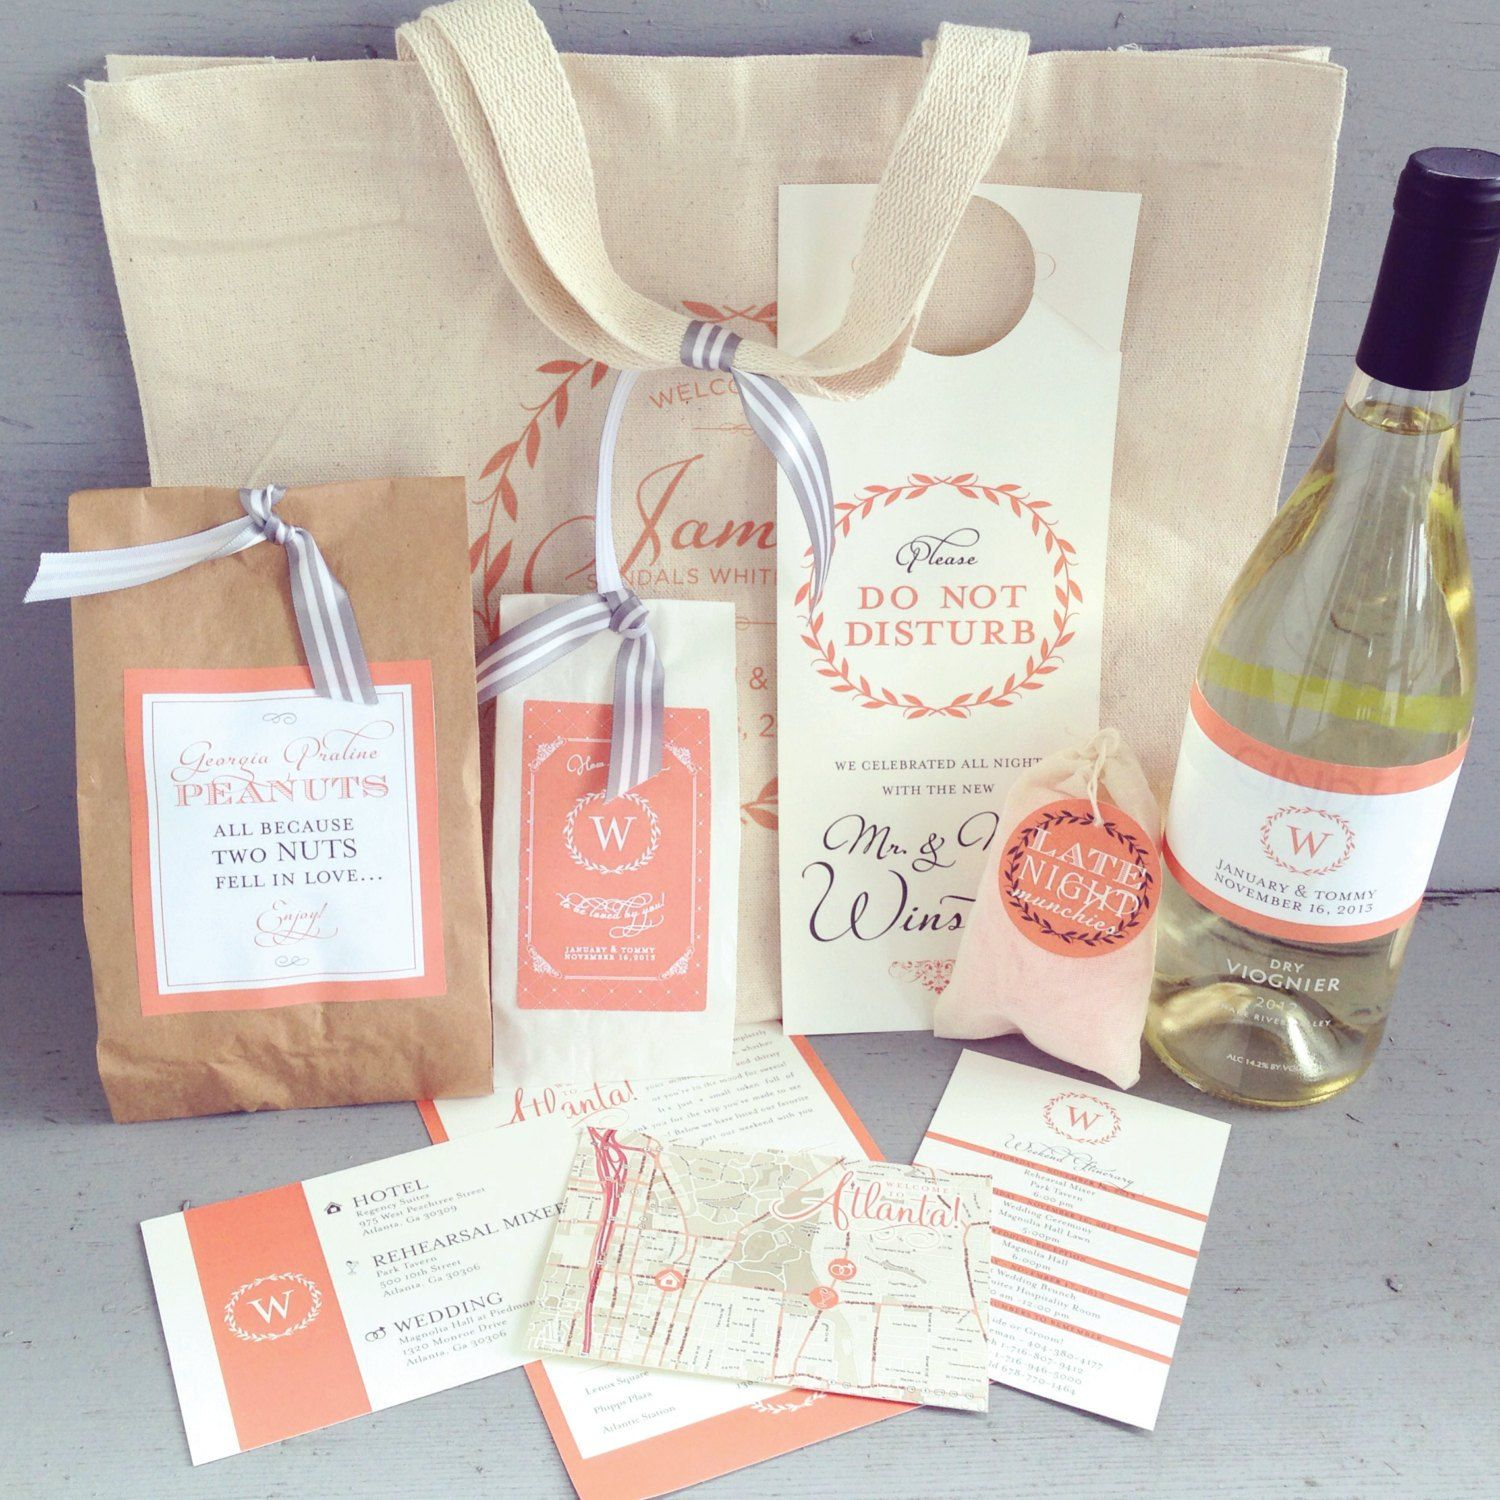 Wedding Welcome Bags - What Goes In Them? | Wedding, Weddings and ...